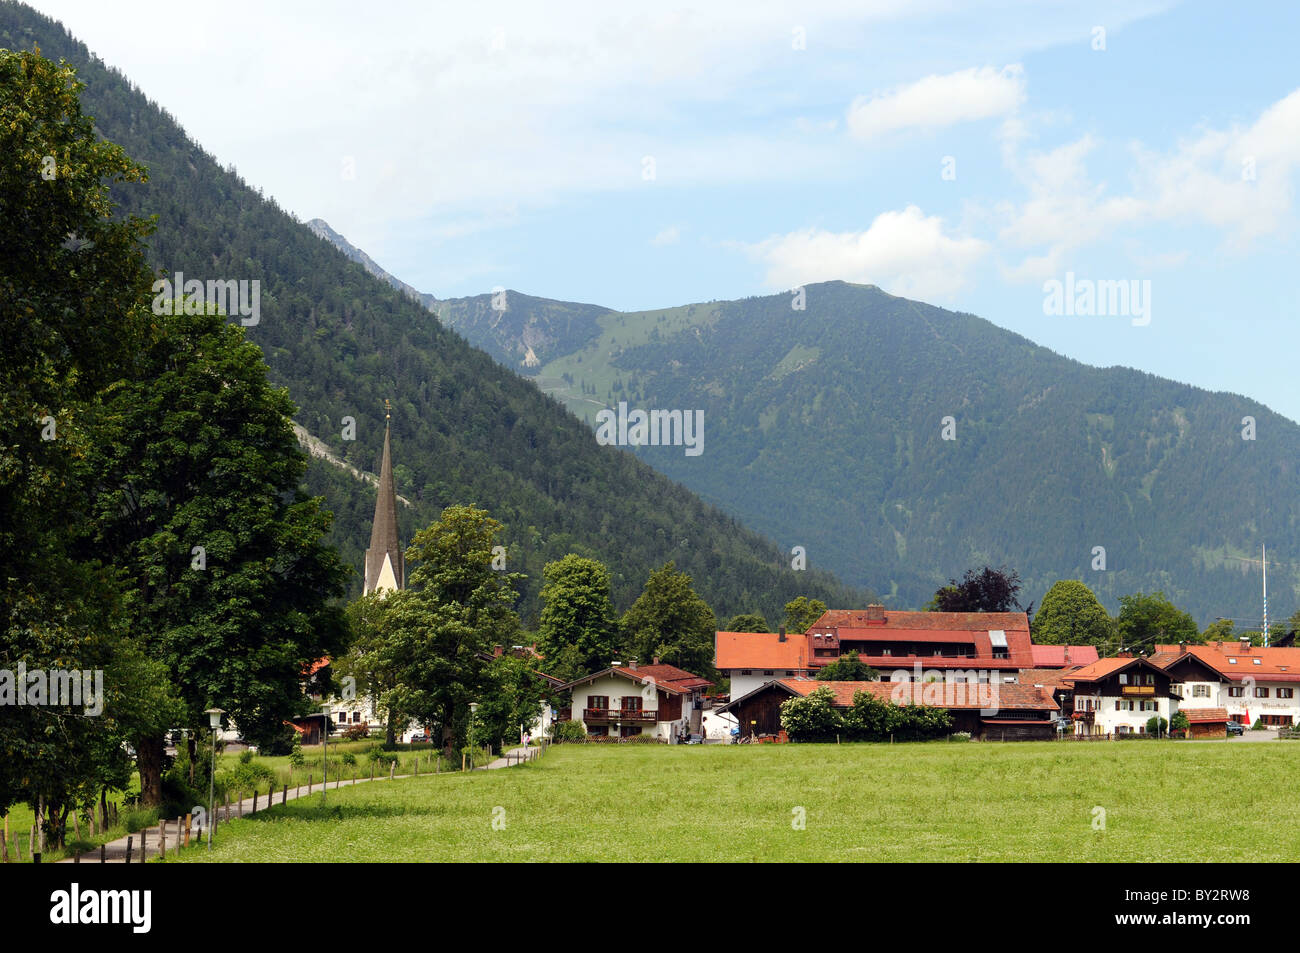 Bayrischzell in Bavaria - Stock Image